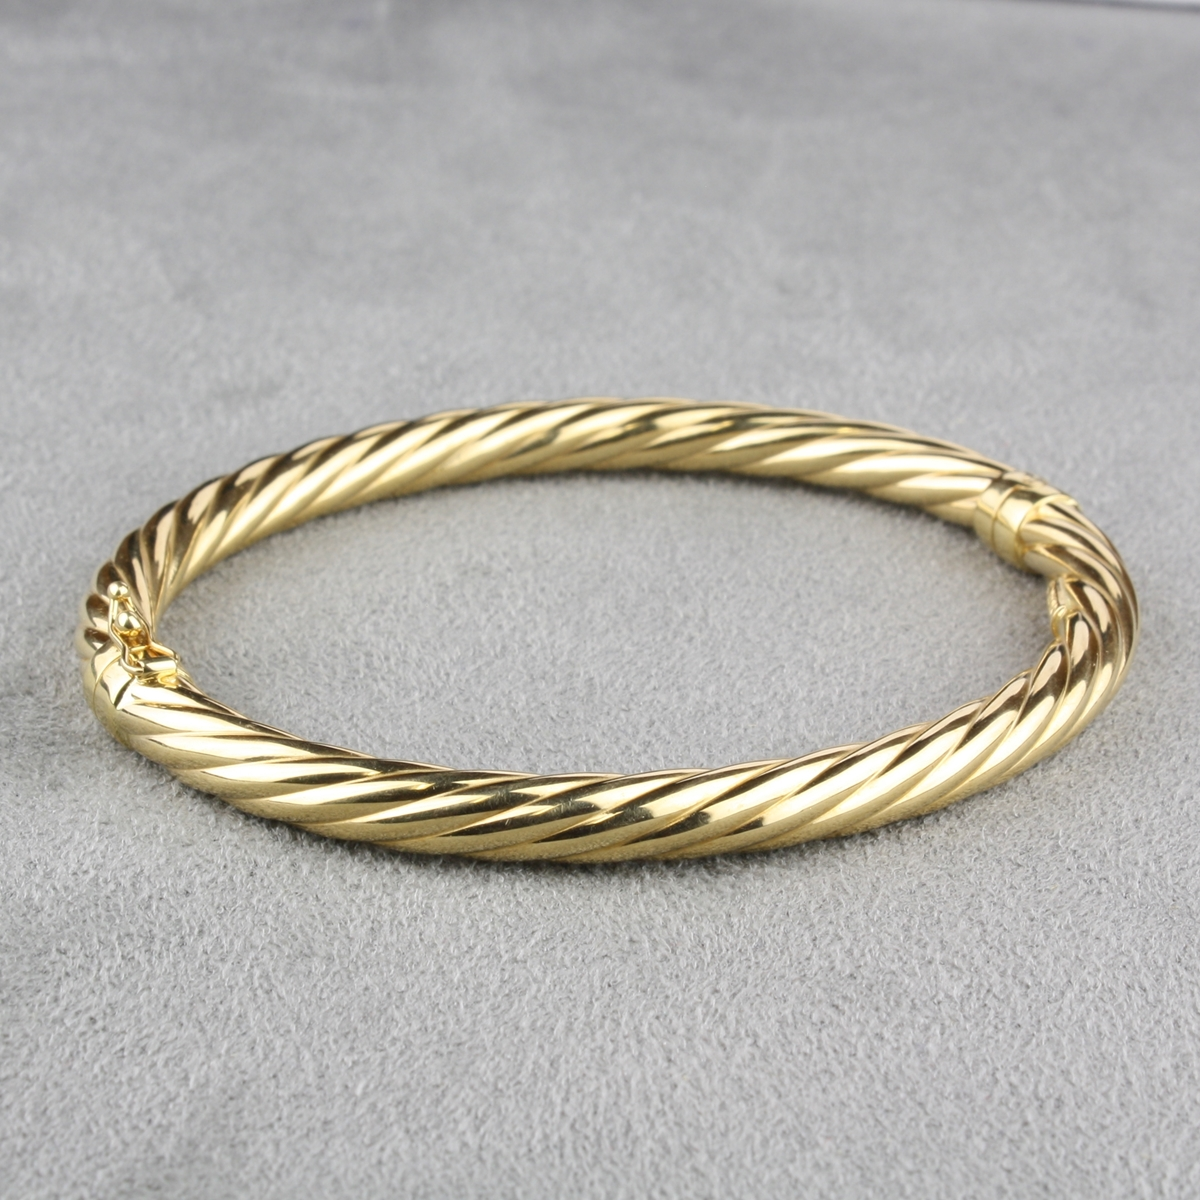 jewelry stainless karat diameter bracelet gold steel bracelets infinity collections finding tool box bangle charm bangles